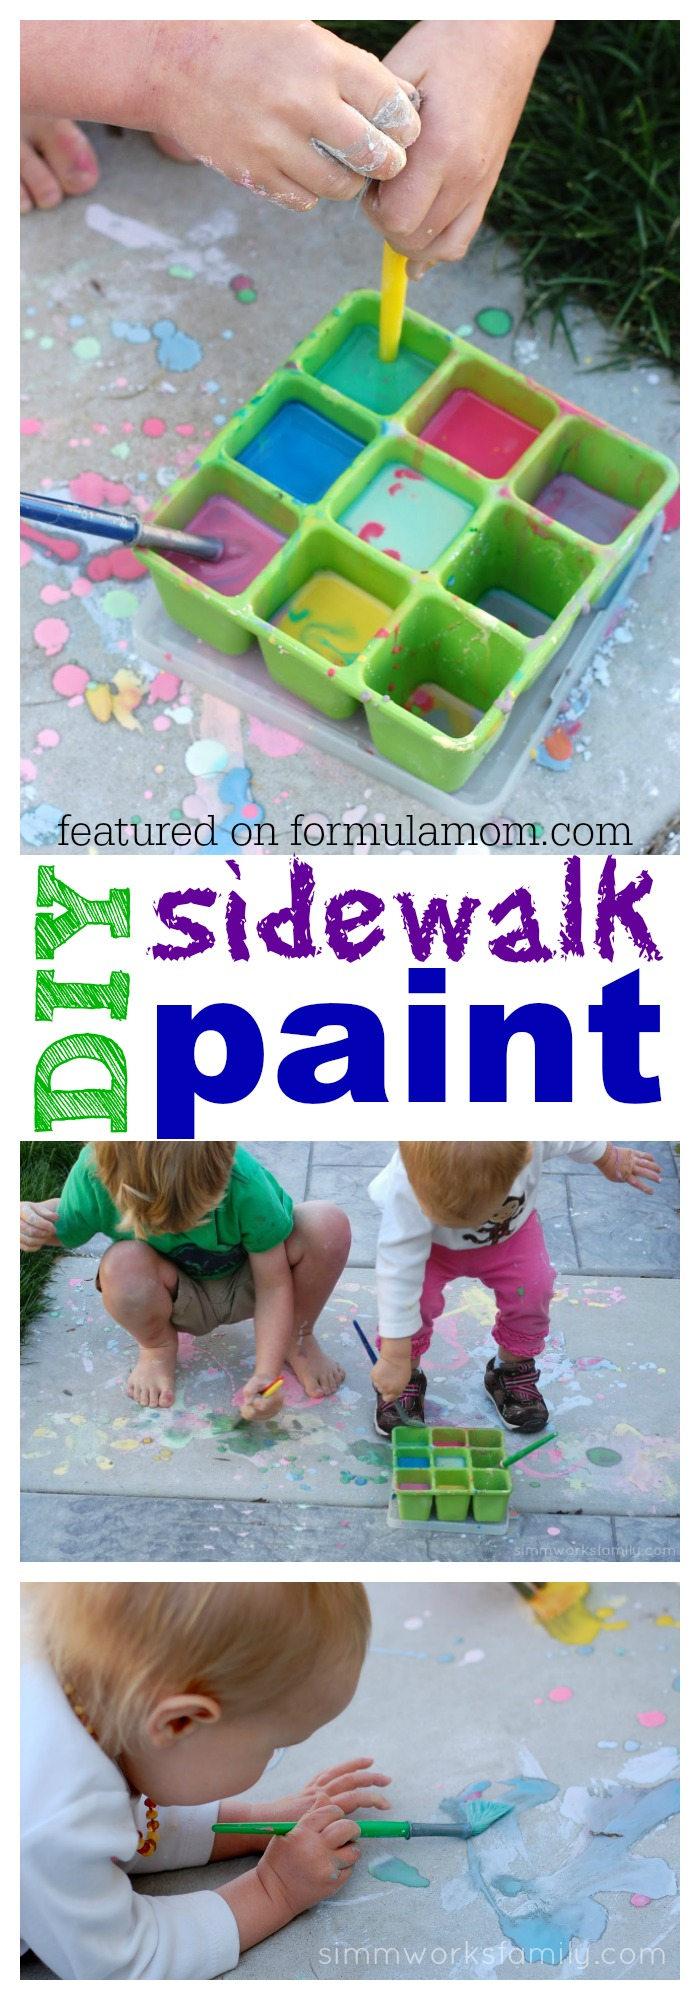 DIY Sidewalk Paint featured on Formula Mom